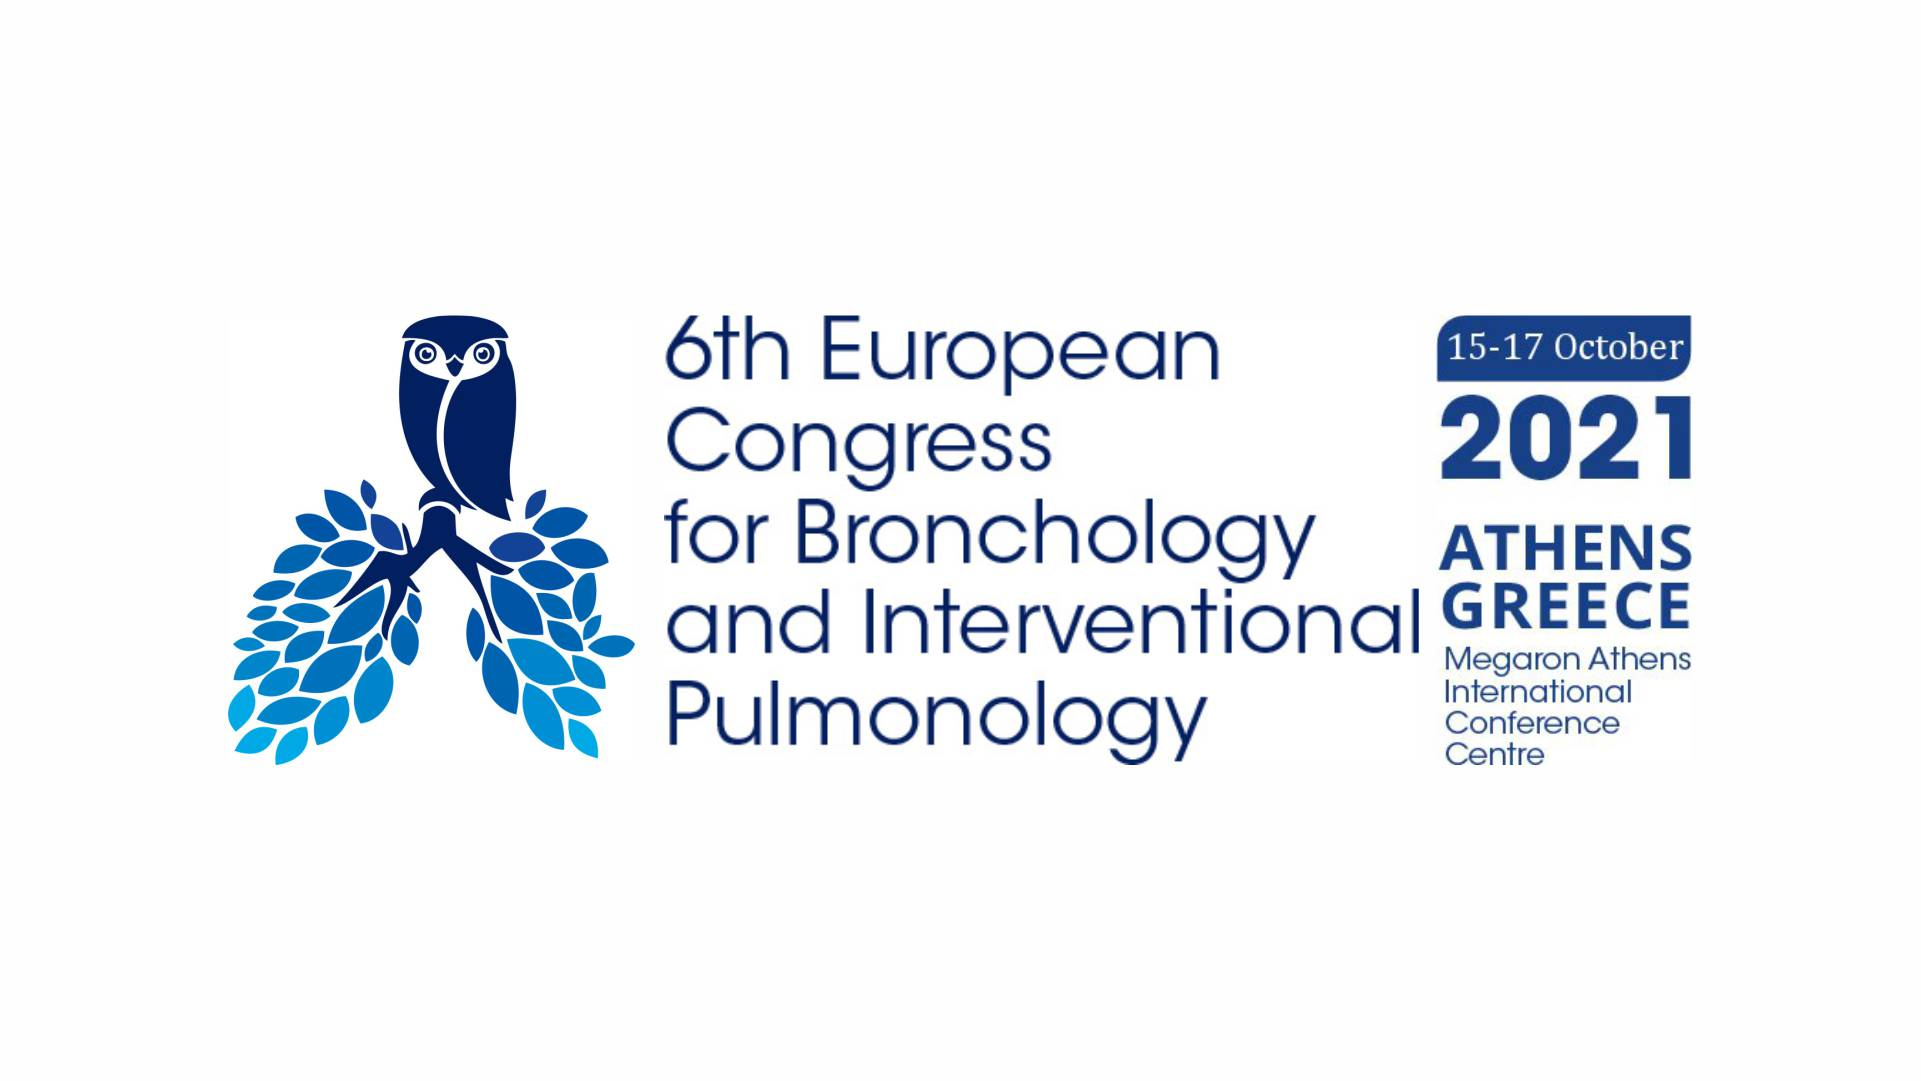 6th European Congress for Bronchology and Interventional Pulmonology – ECBIP 2021